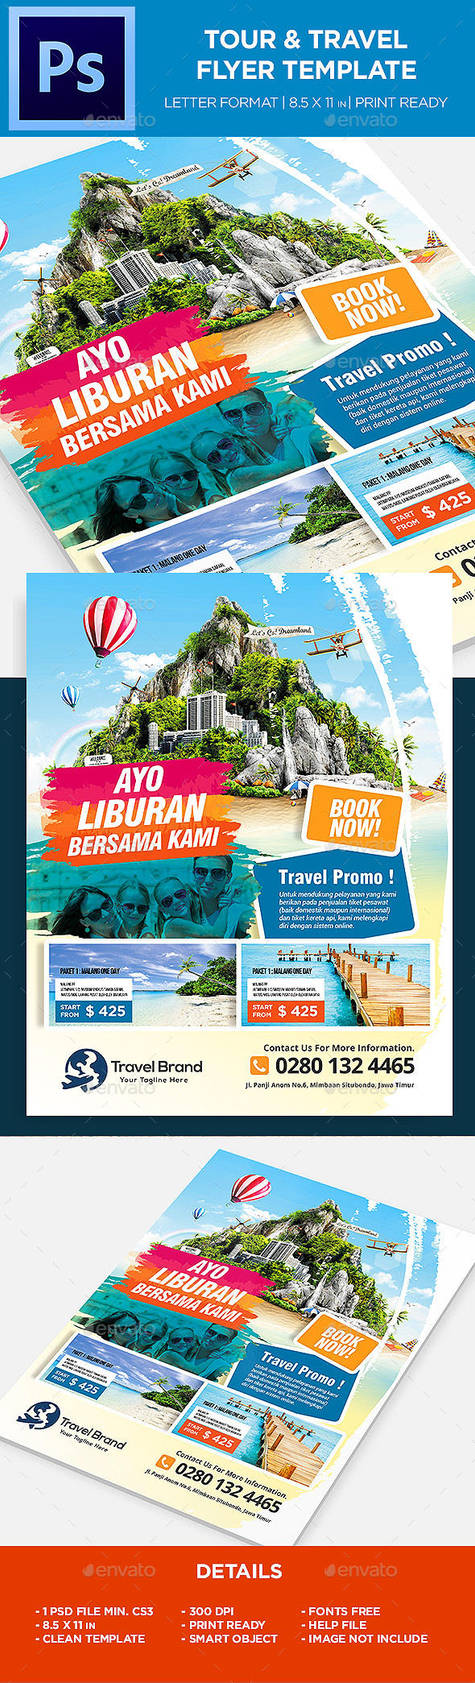 Travel Tours Flyer Template By Kijikai On Deviantart